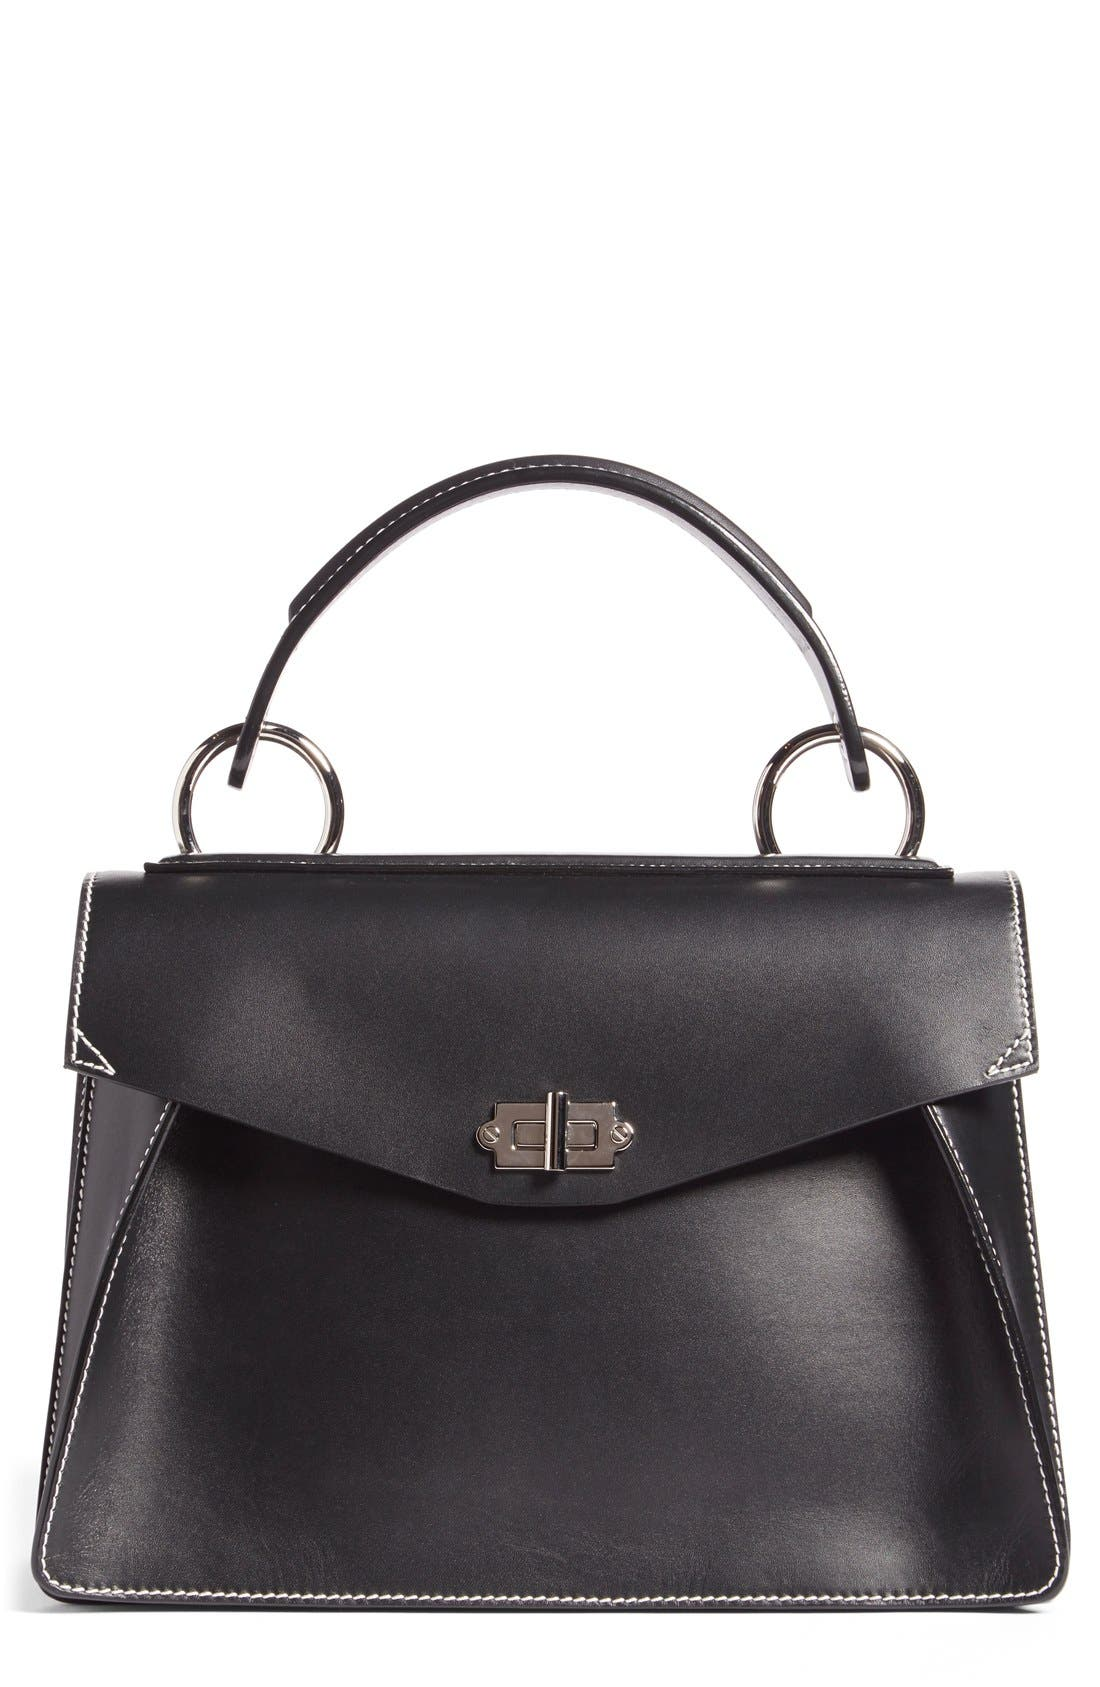 Proenza Schouler 'Medium Hava' Top Handle Calfskin Leather Satchel